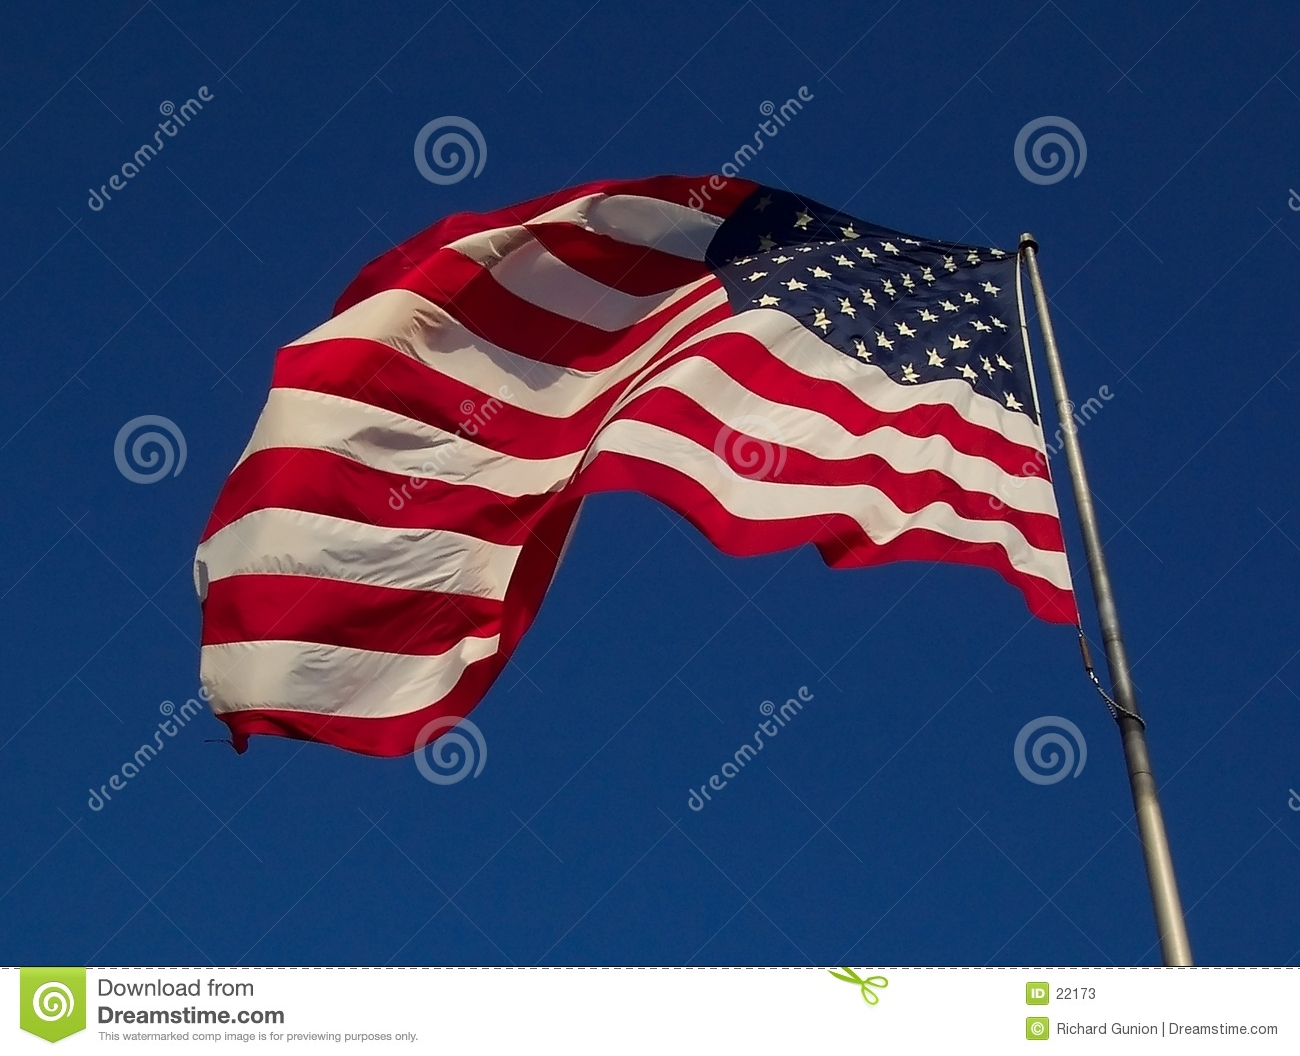 USA Flag - Windy Day